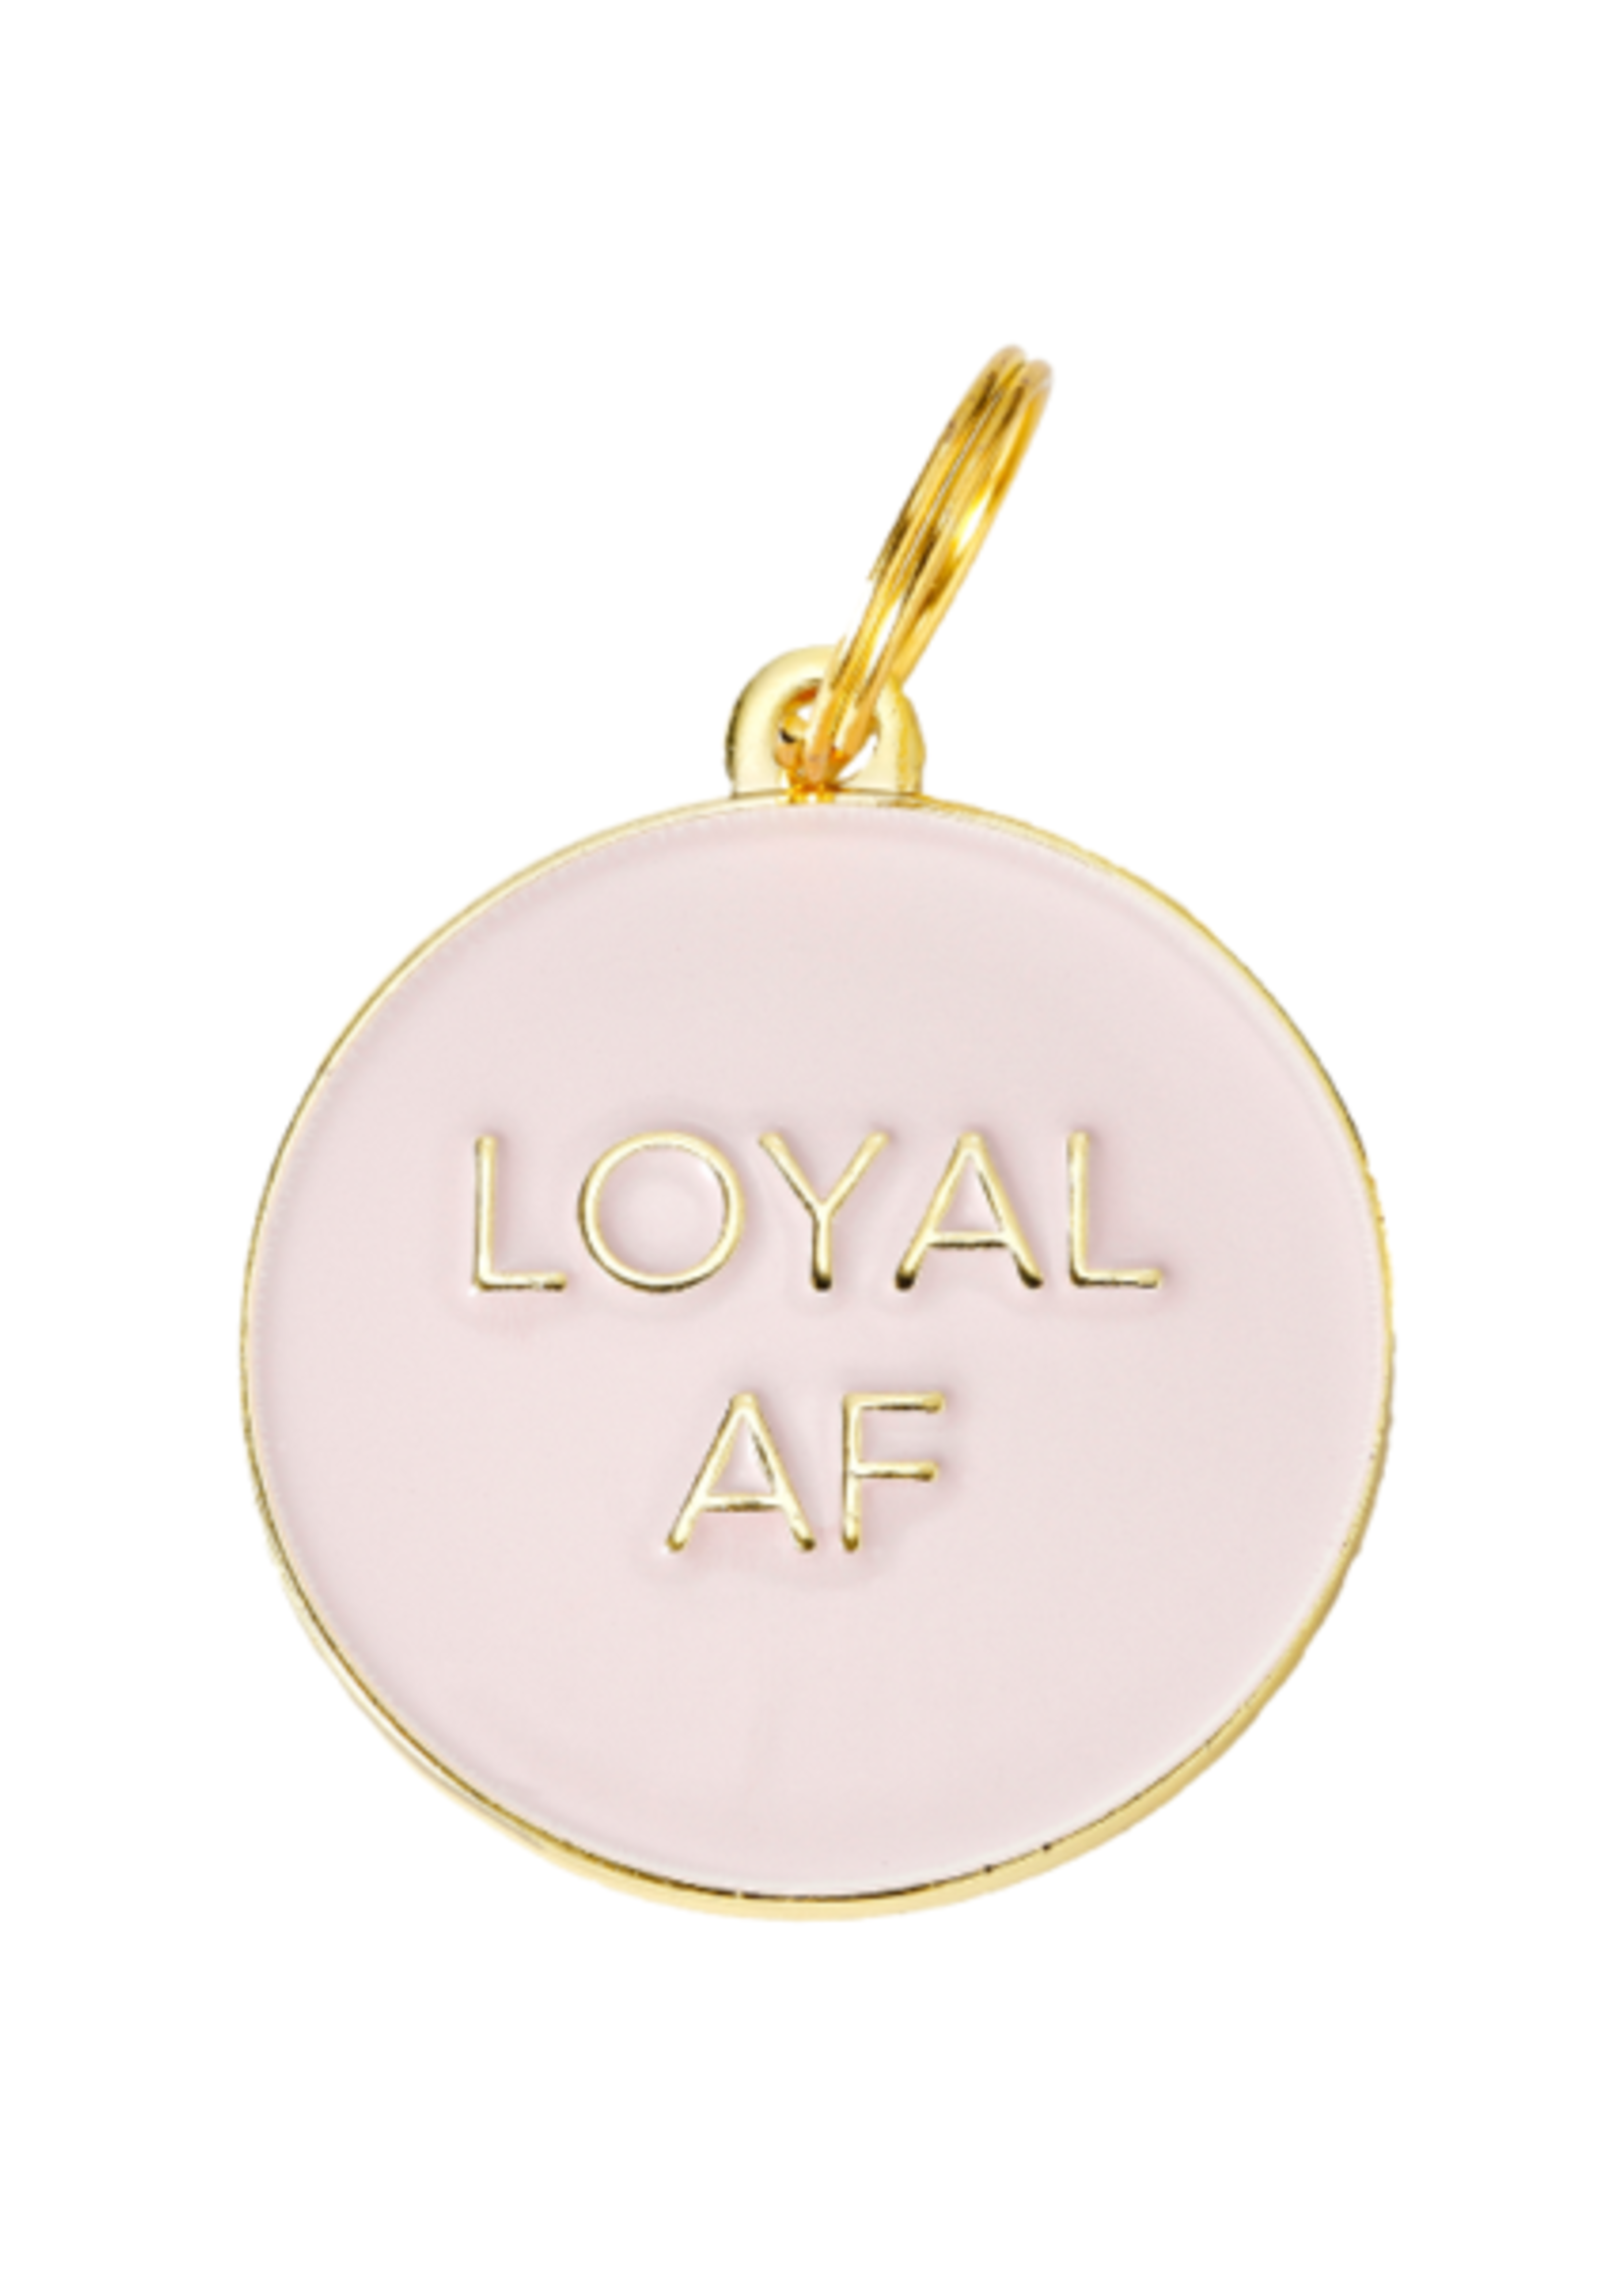 Two Tails Pet Company Loyal AF